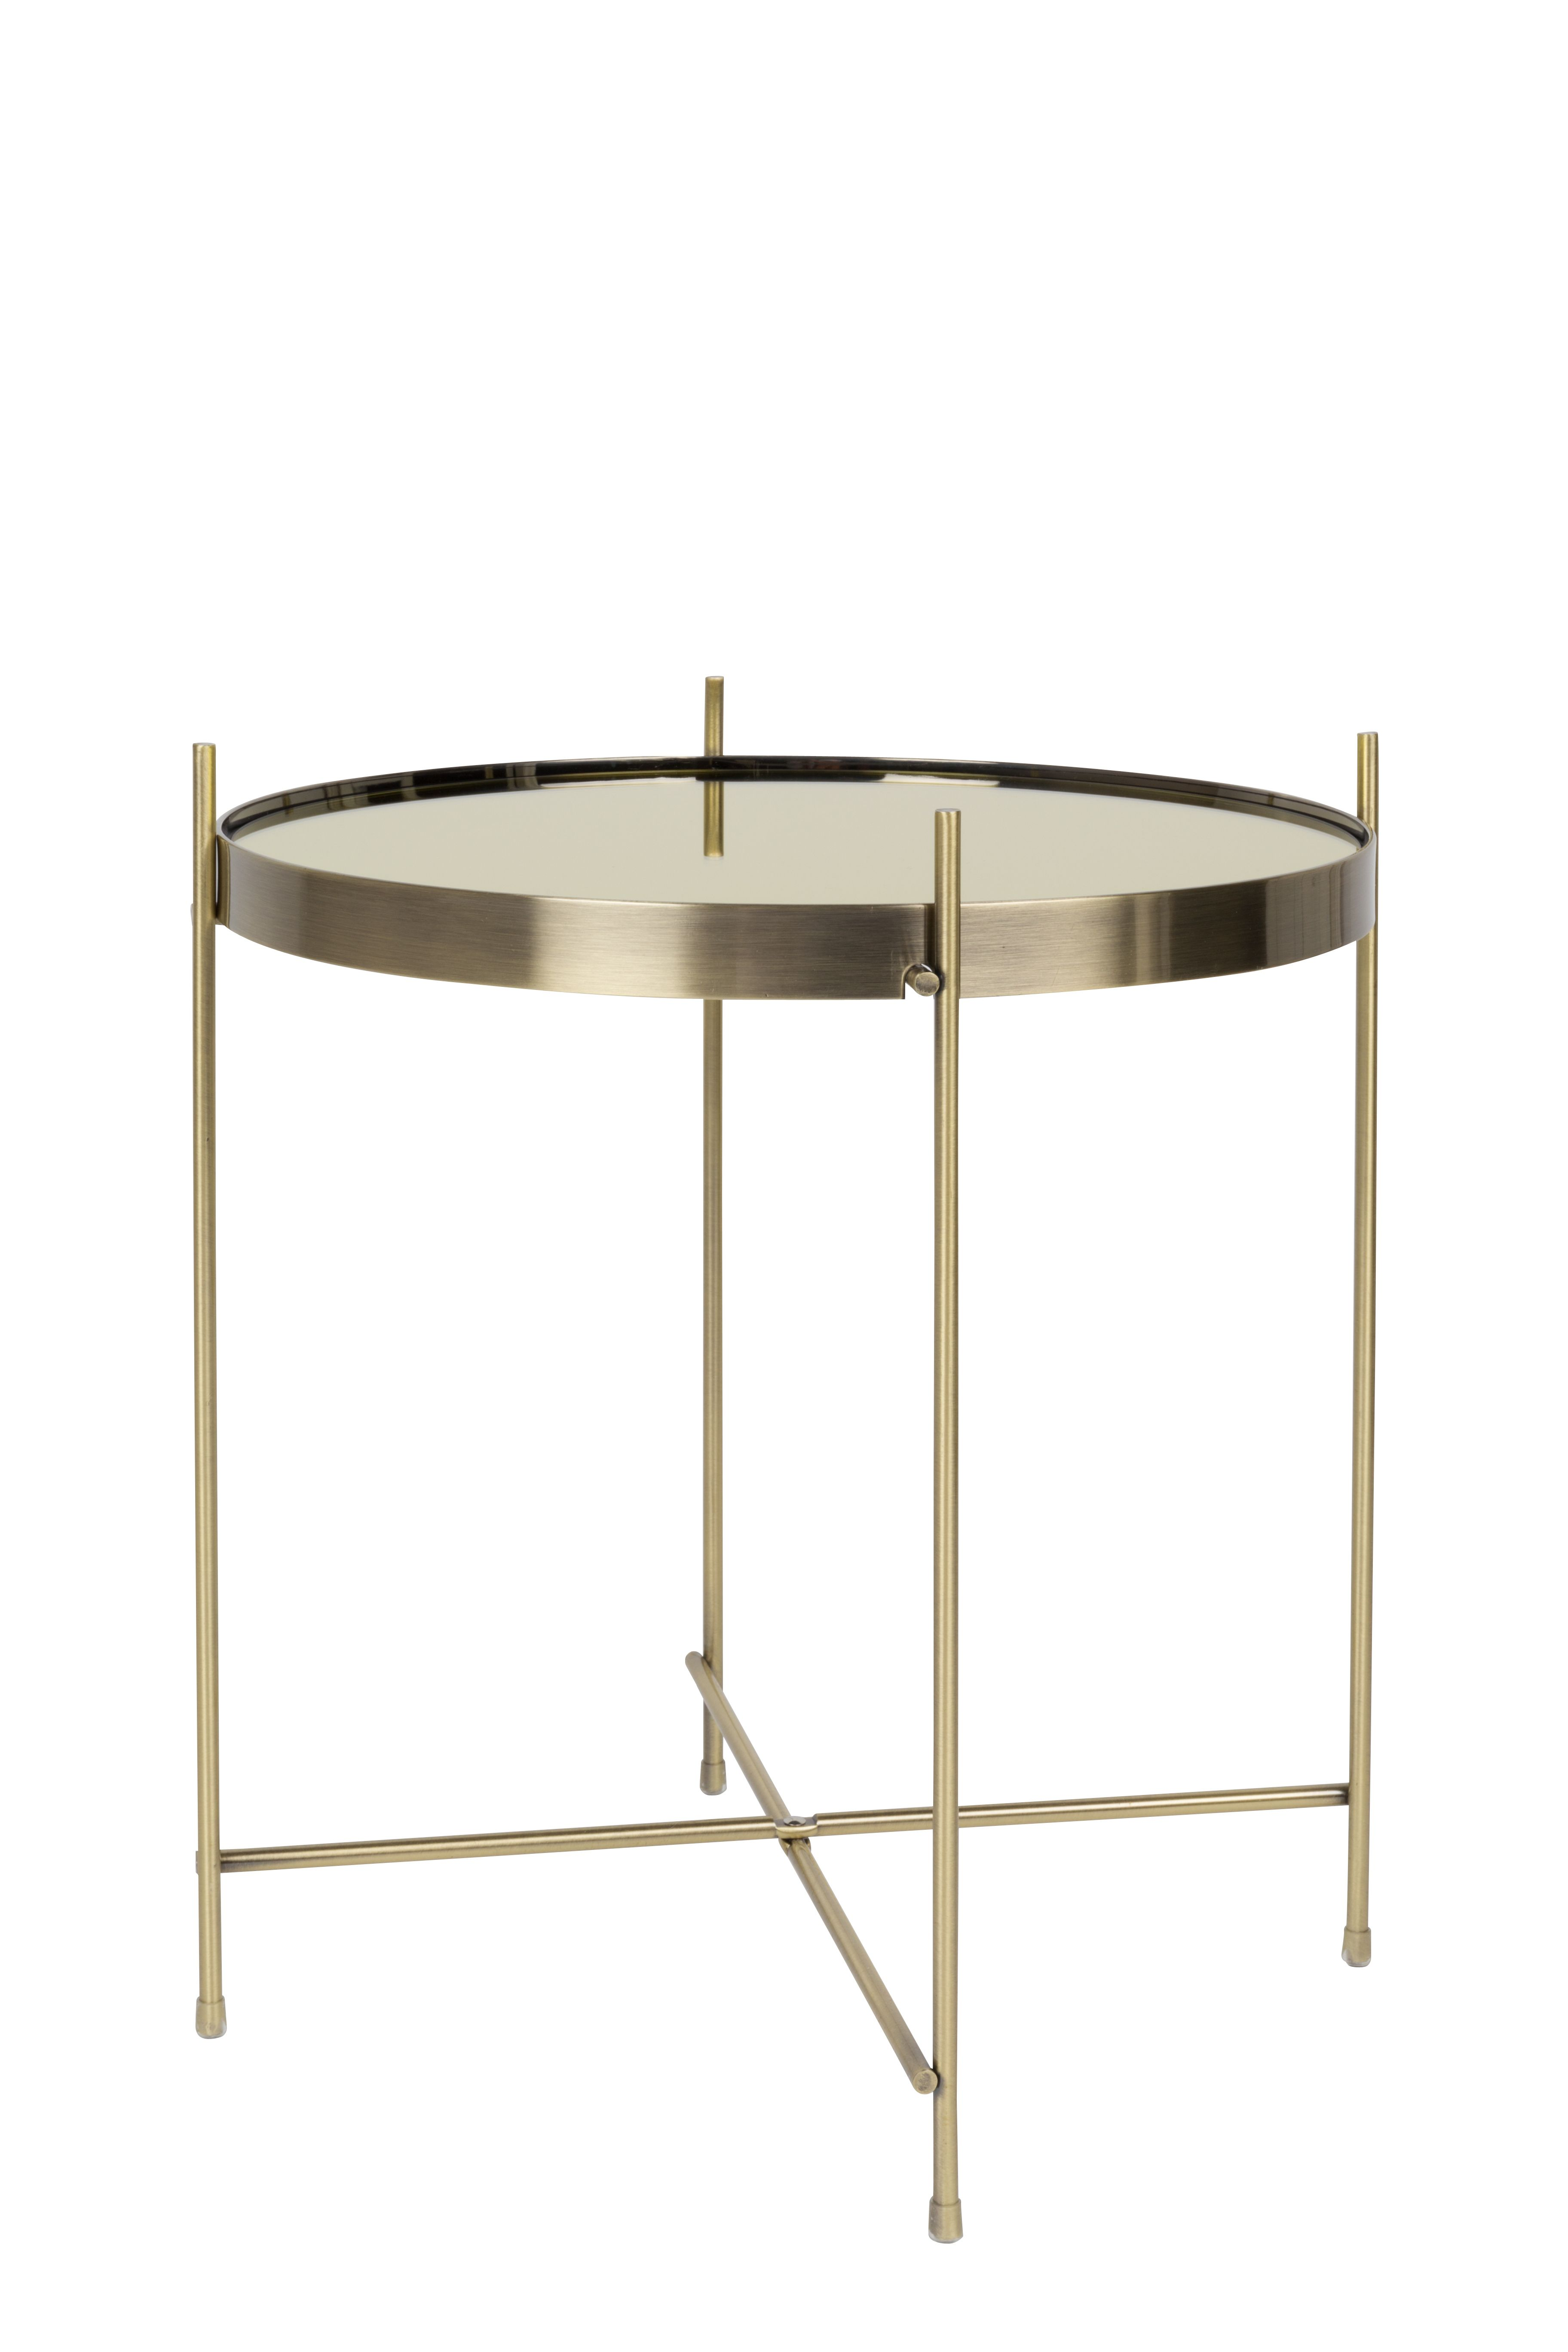 Cupid Side Table Gold Sidetable Tabled Appoint Beistelltisch Bijzettafel Glass Side Tables Gold Glass Coffee Table Tempered Glass Table Top